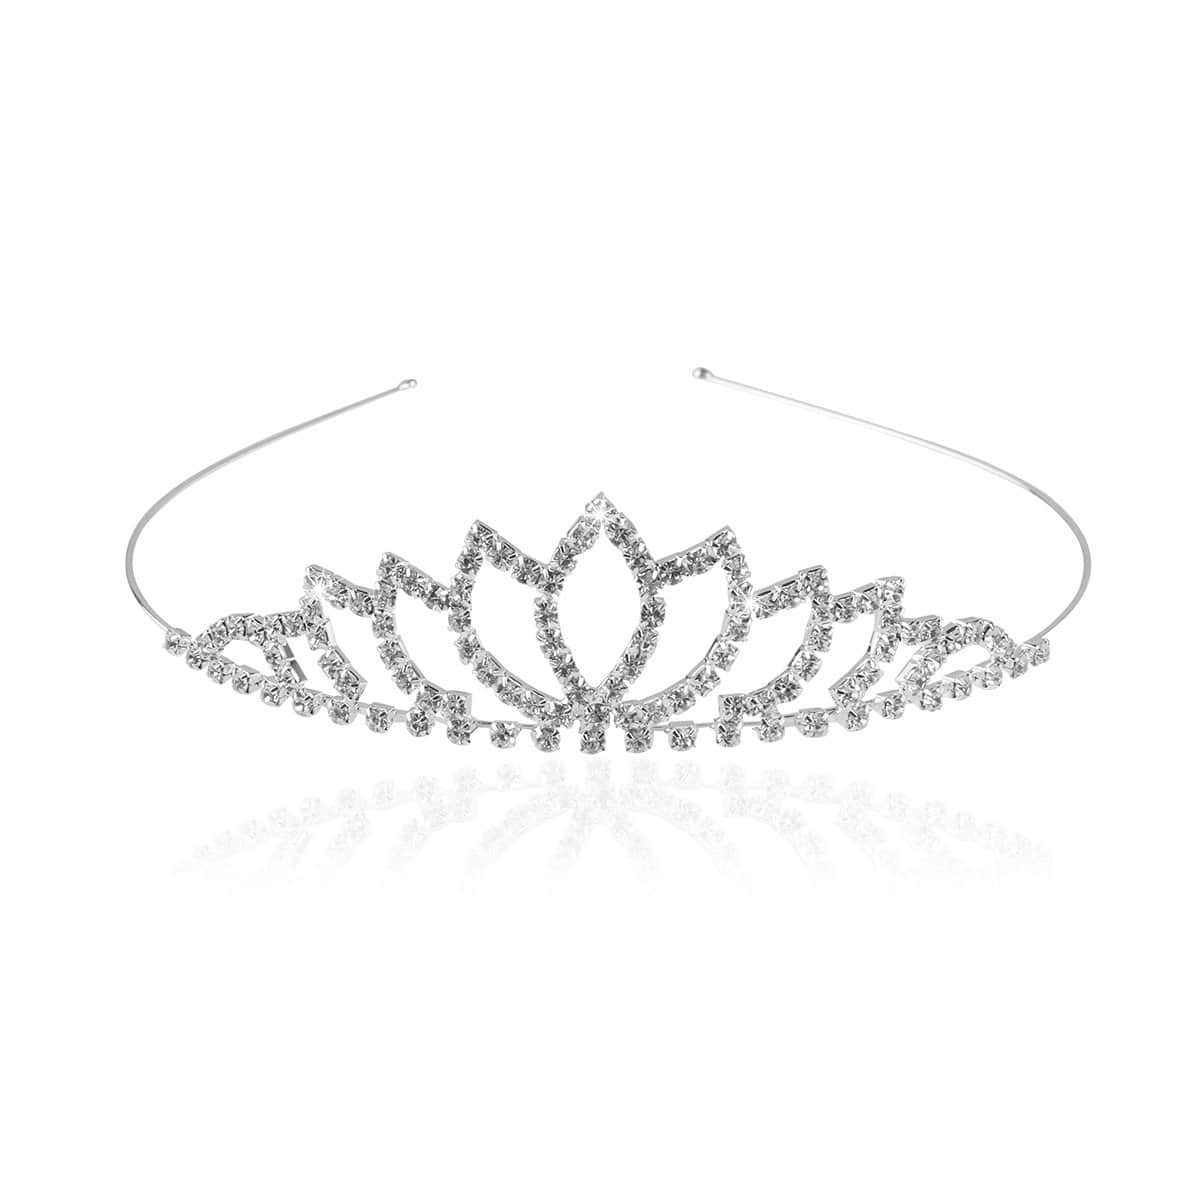 Wedding Tiara w/ Rhinestone Decor by Pixnor for $0.99 AC + FSSS